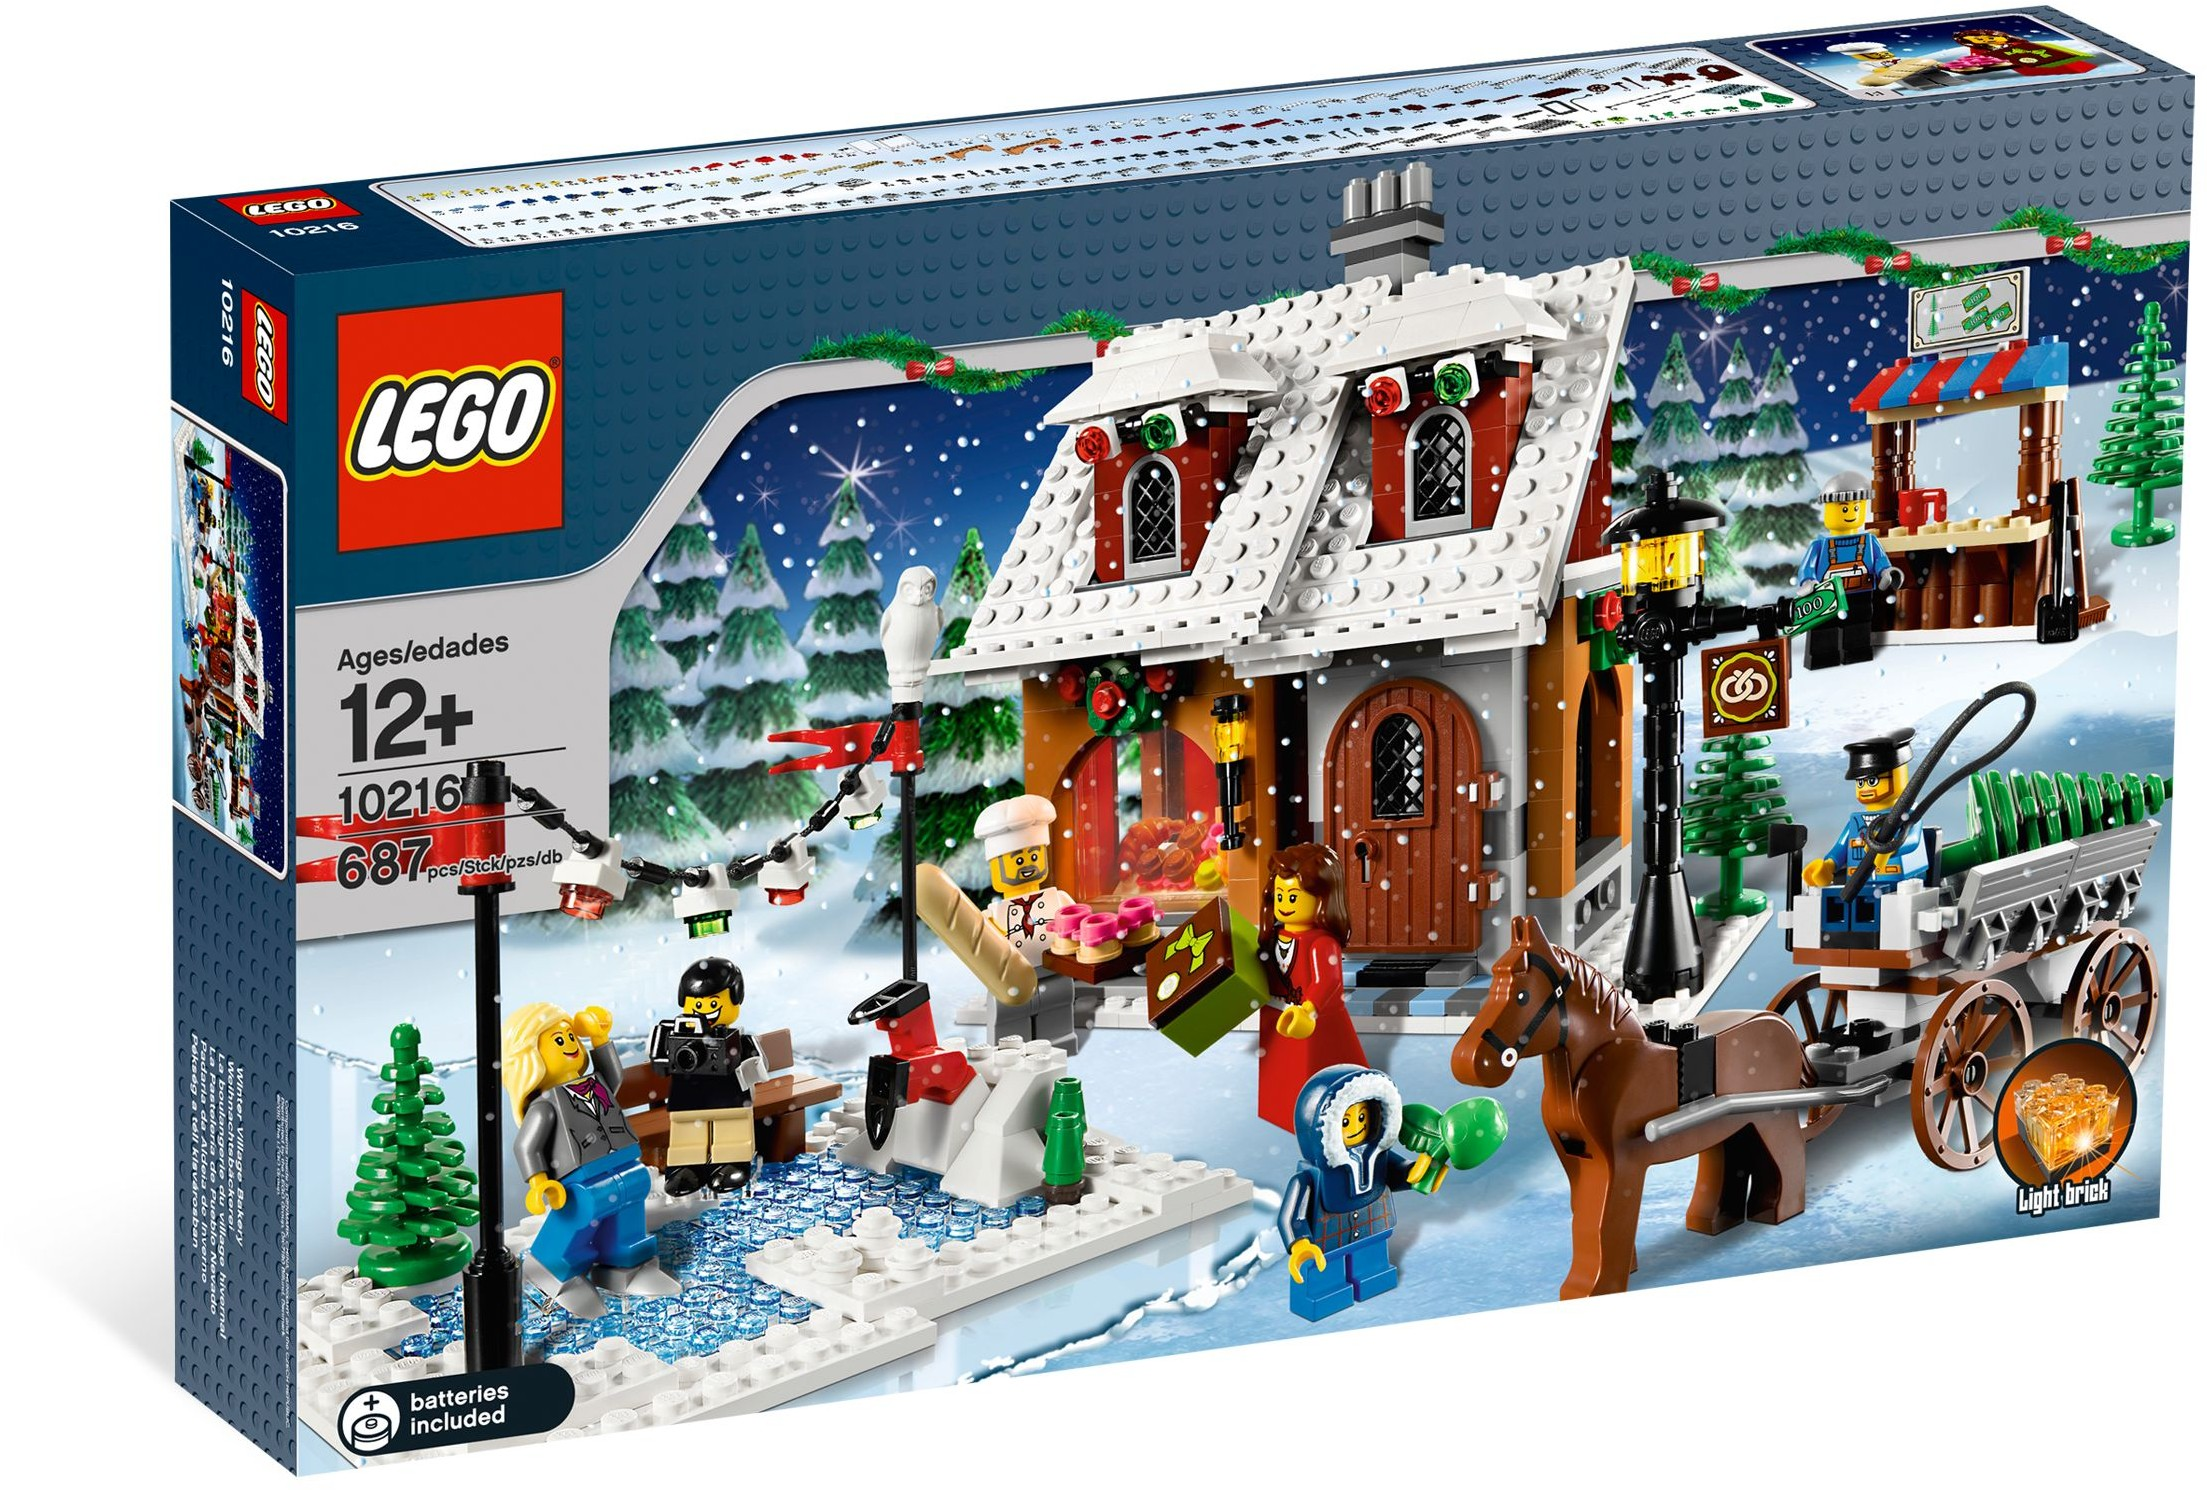 The Ultimate List of LEGO Holiday Sets - Part 1 - The Family Brick